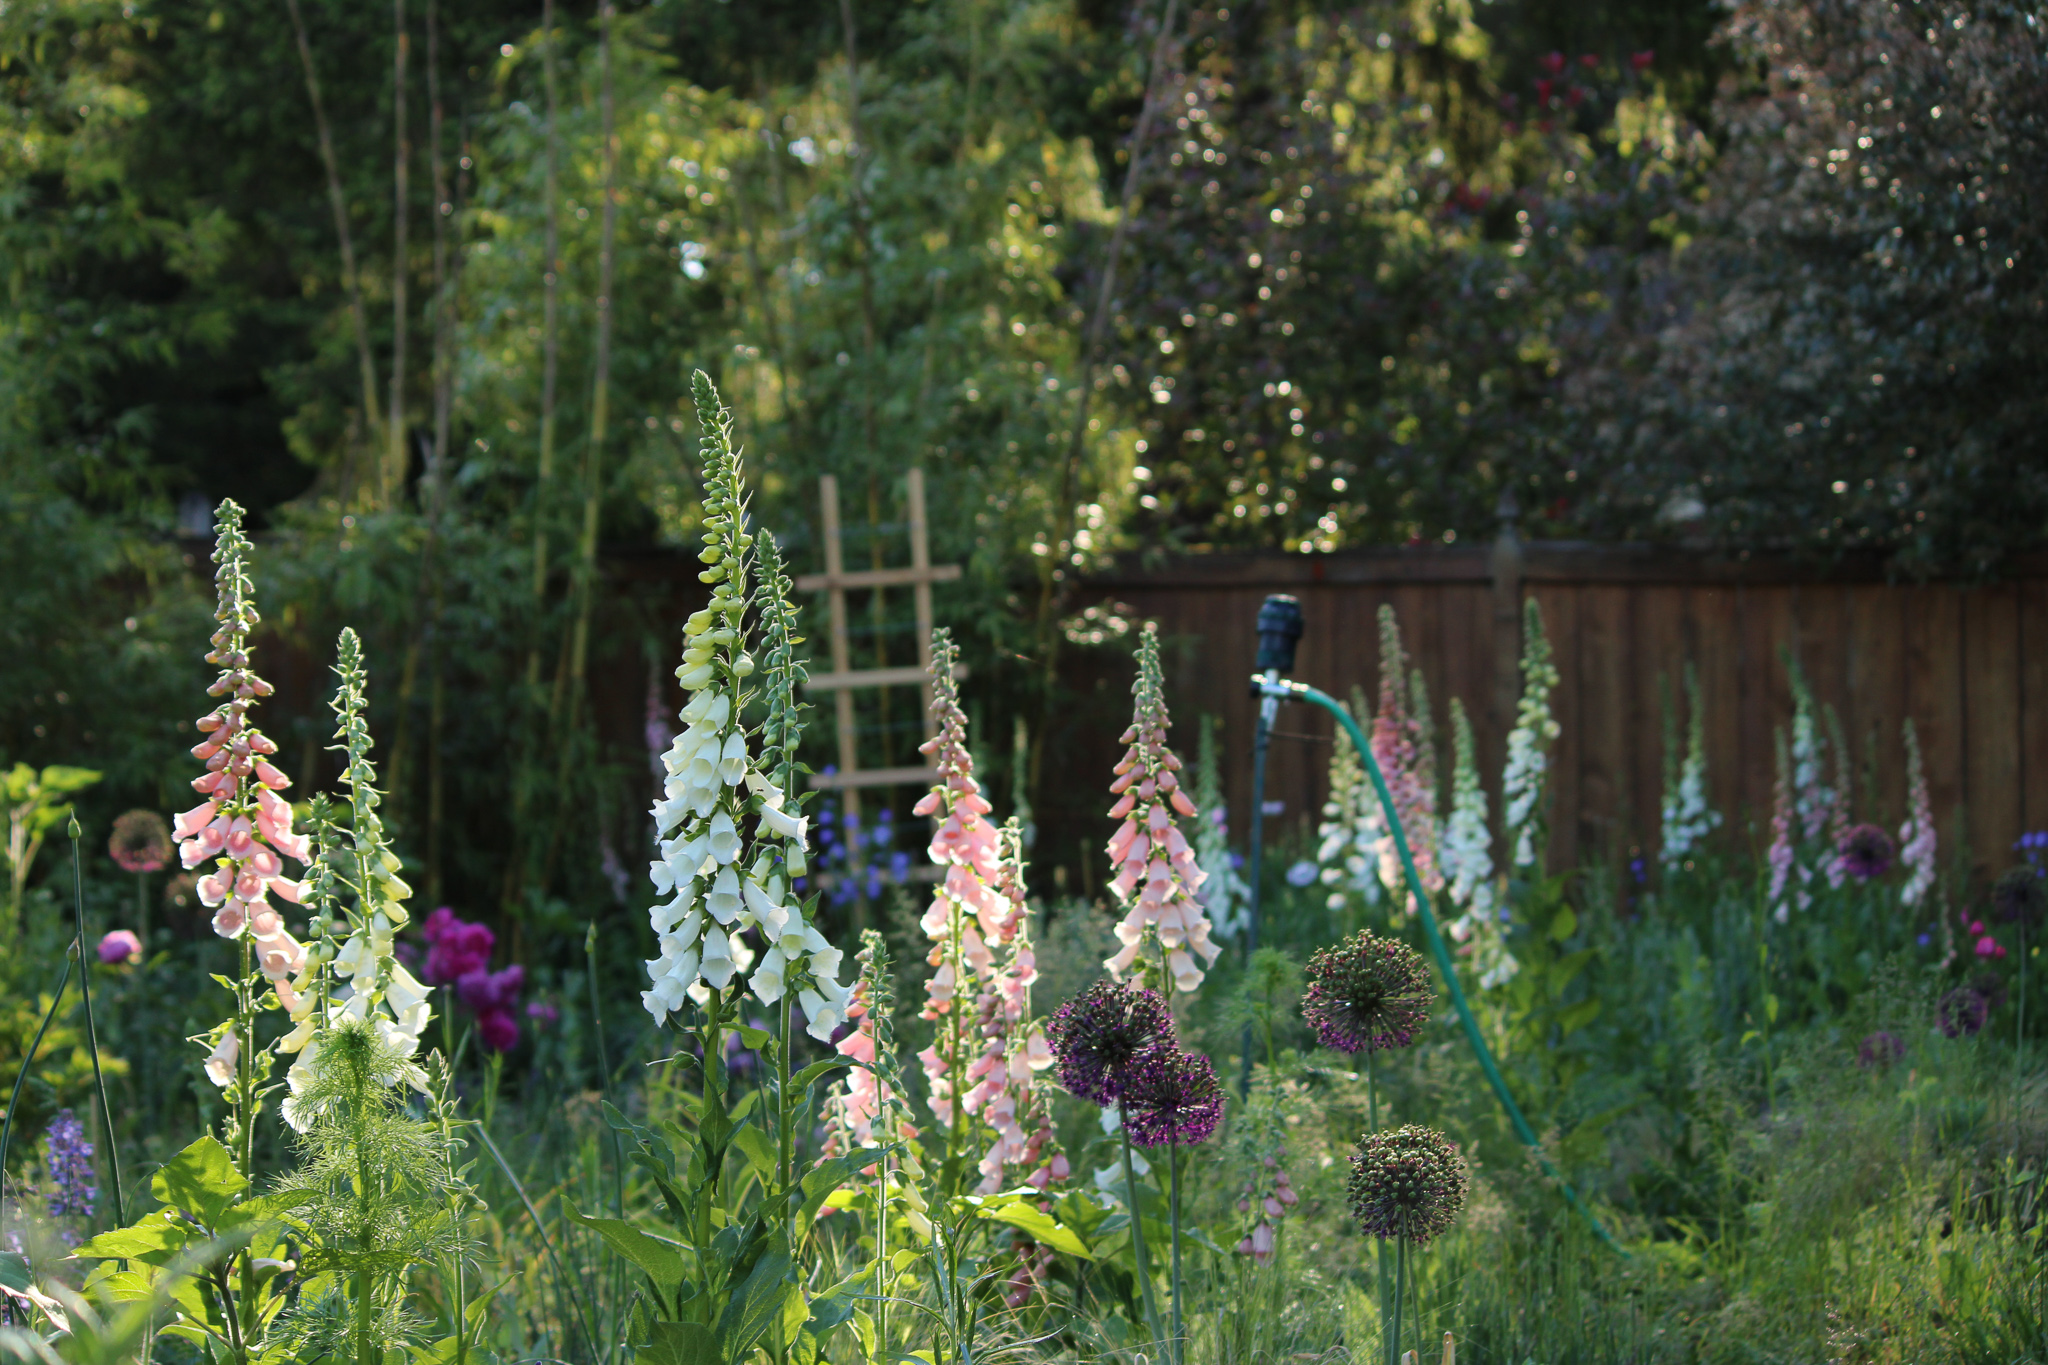 foxgloves of various colors